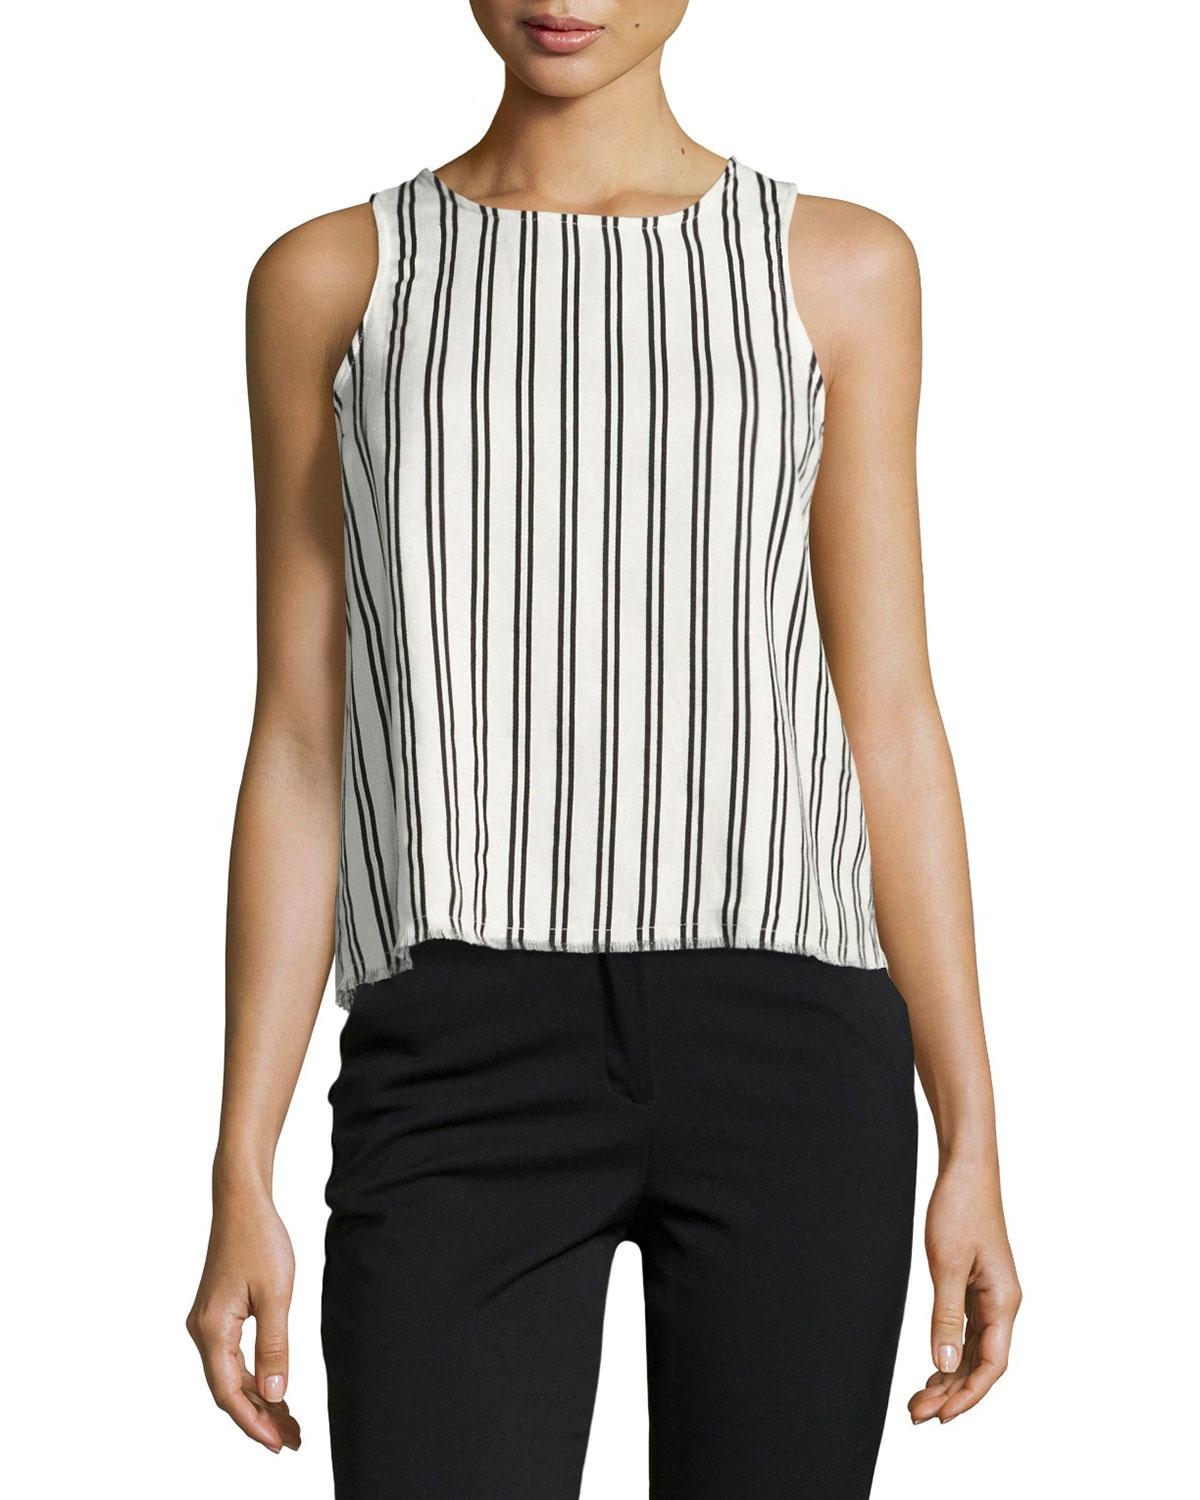 Lucca Couture Striped Top With Lace-up Back, White/black